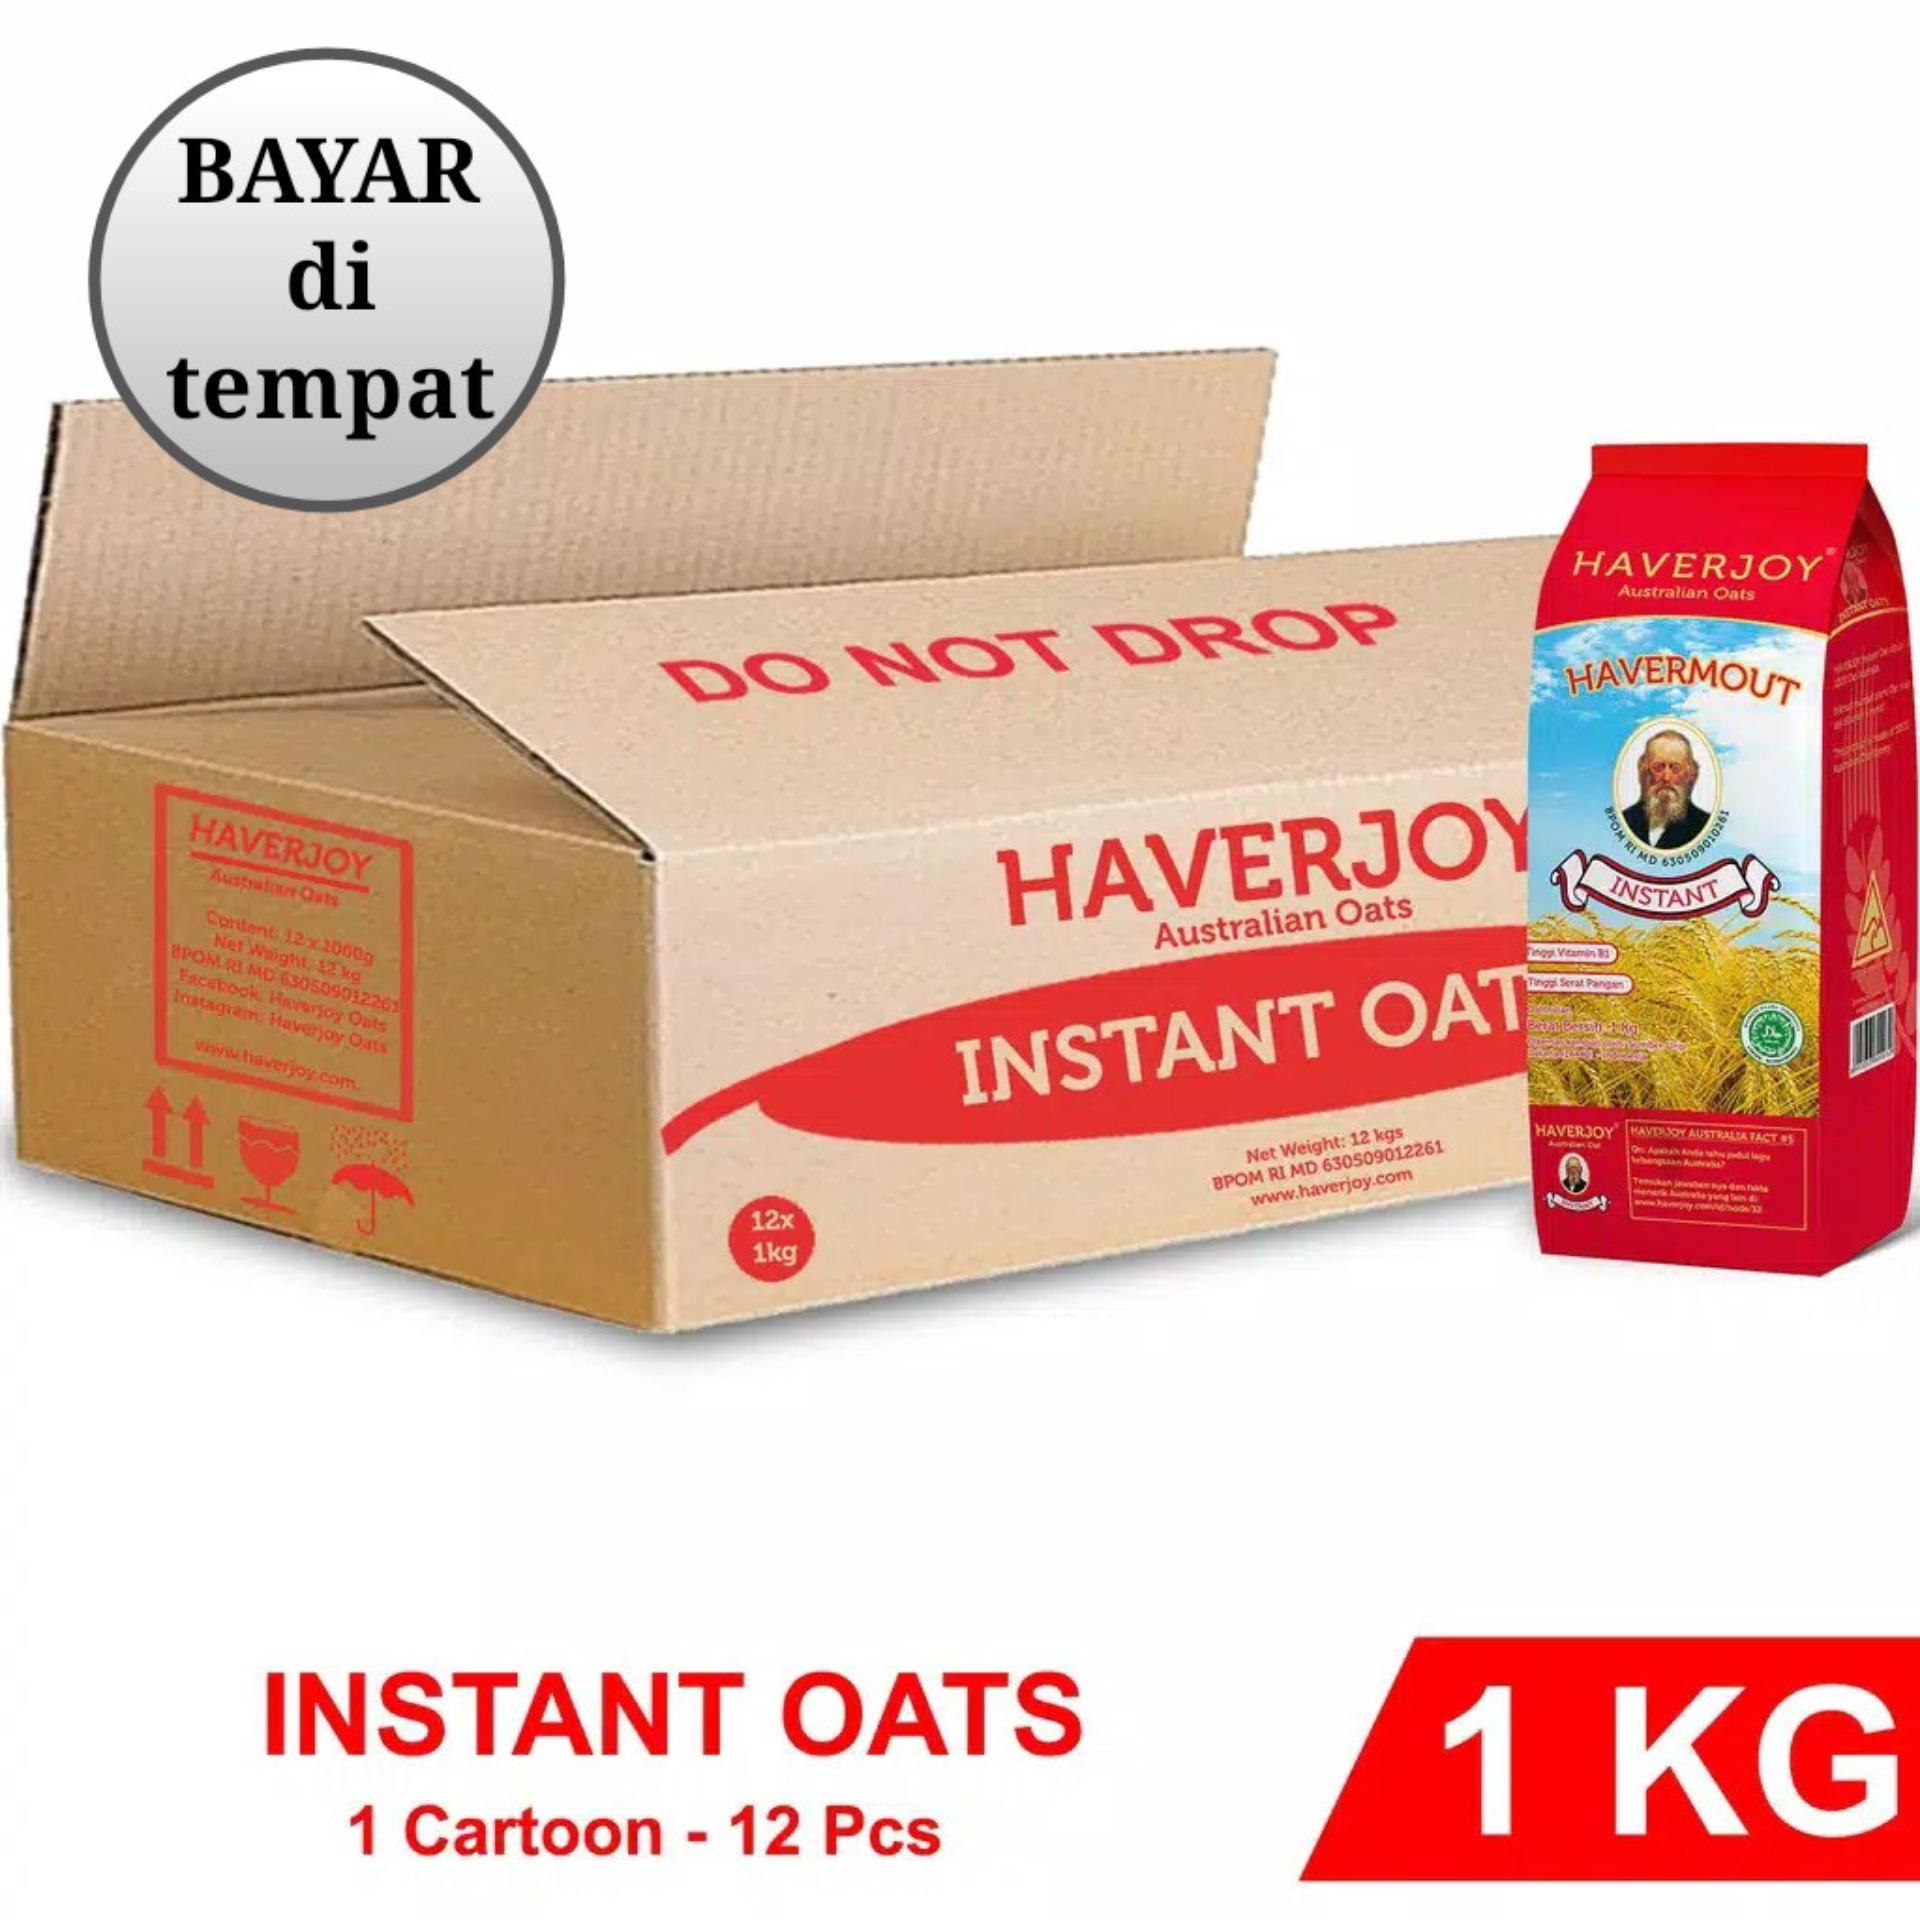 Haverjoy Full Carton Instan Oats 1kg